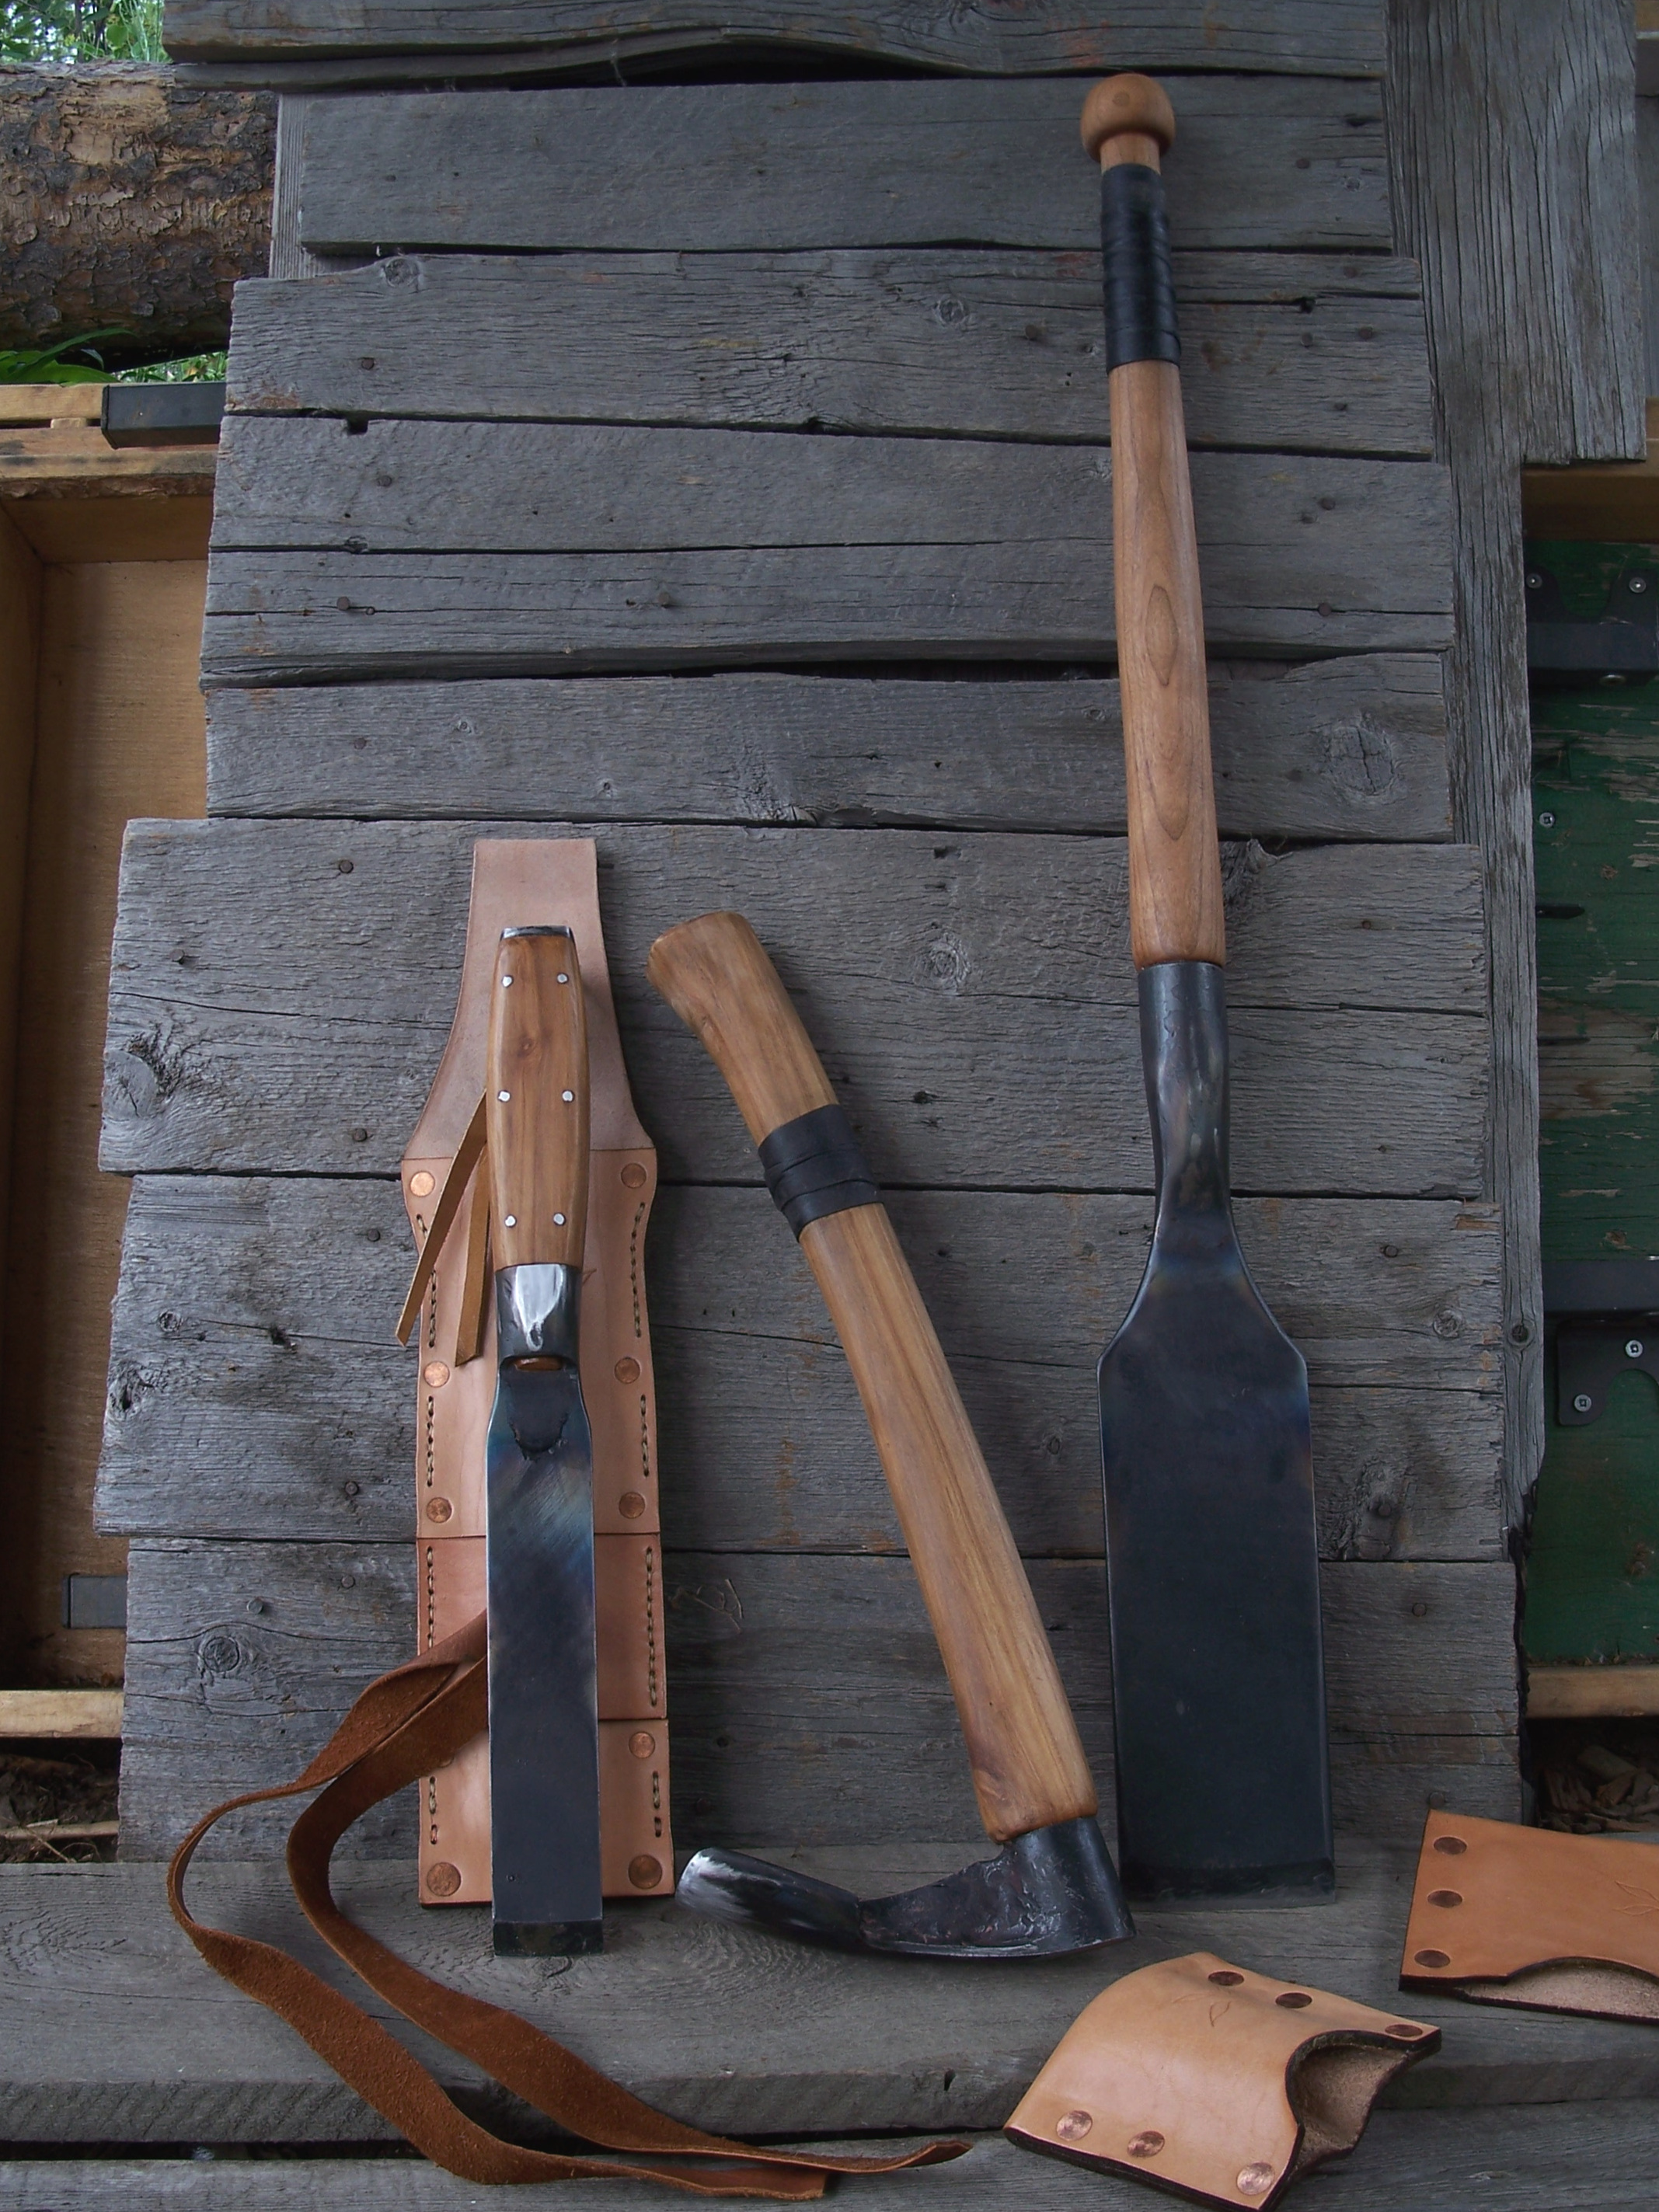 Log home builder's hand tools